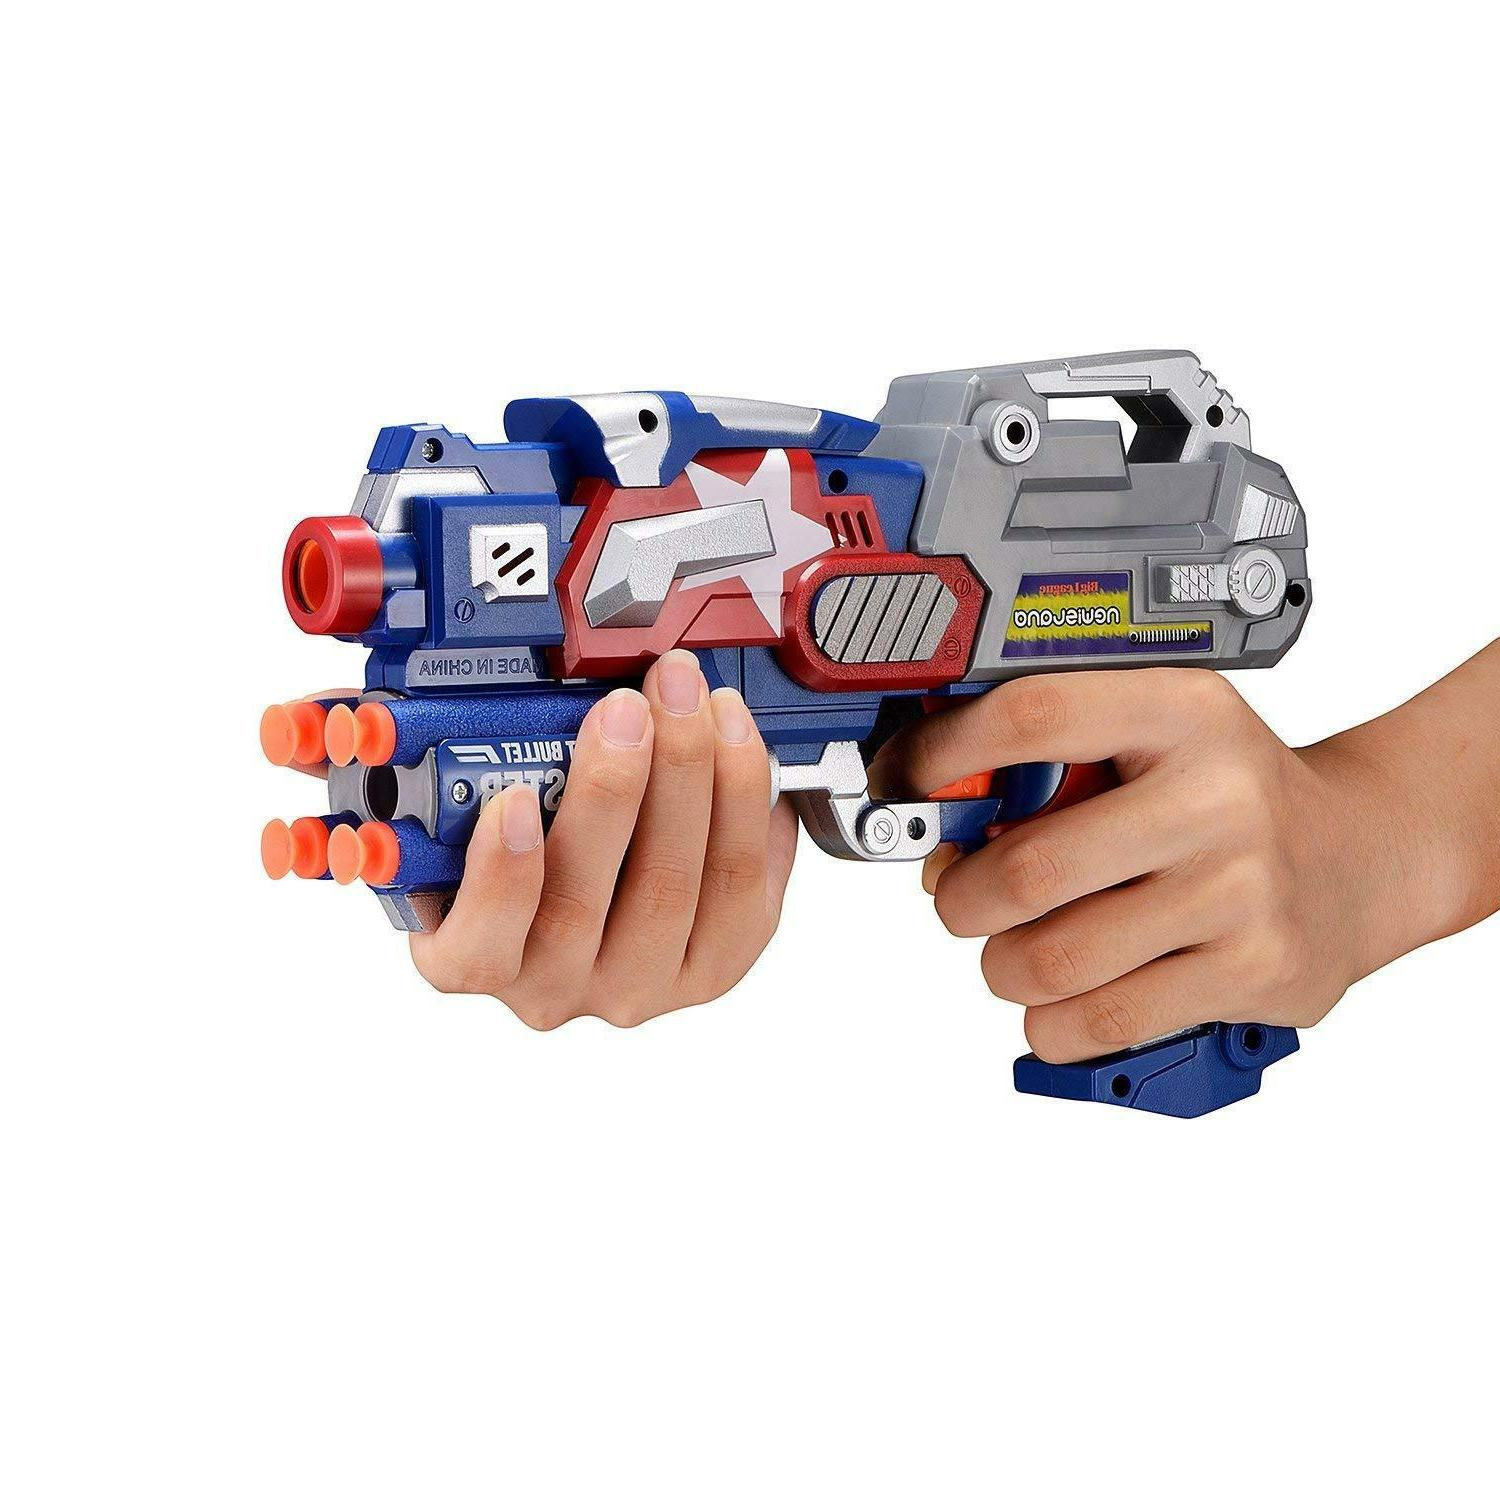 Toys For Boys Kids Foam Blaster League Toy 6+